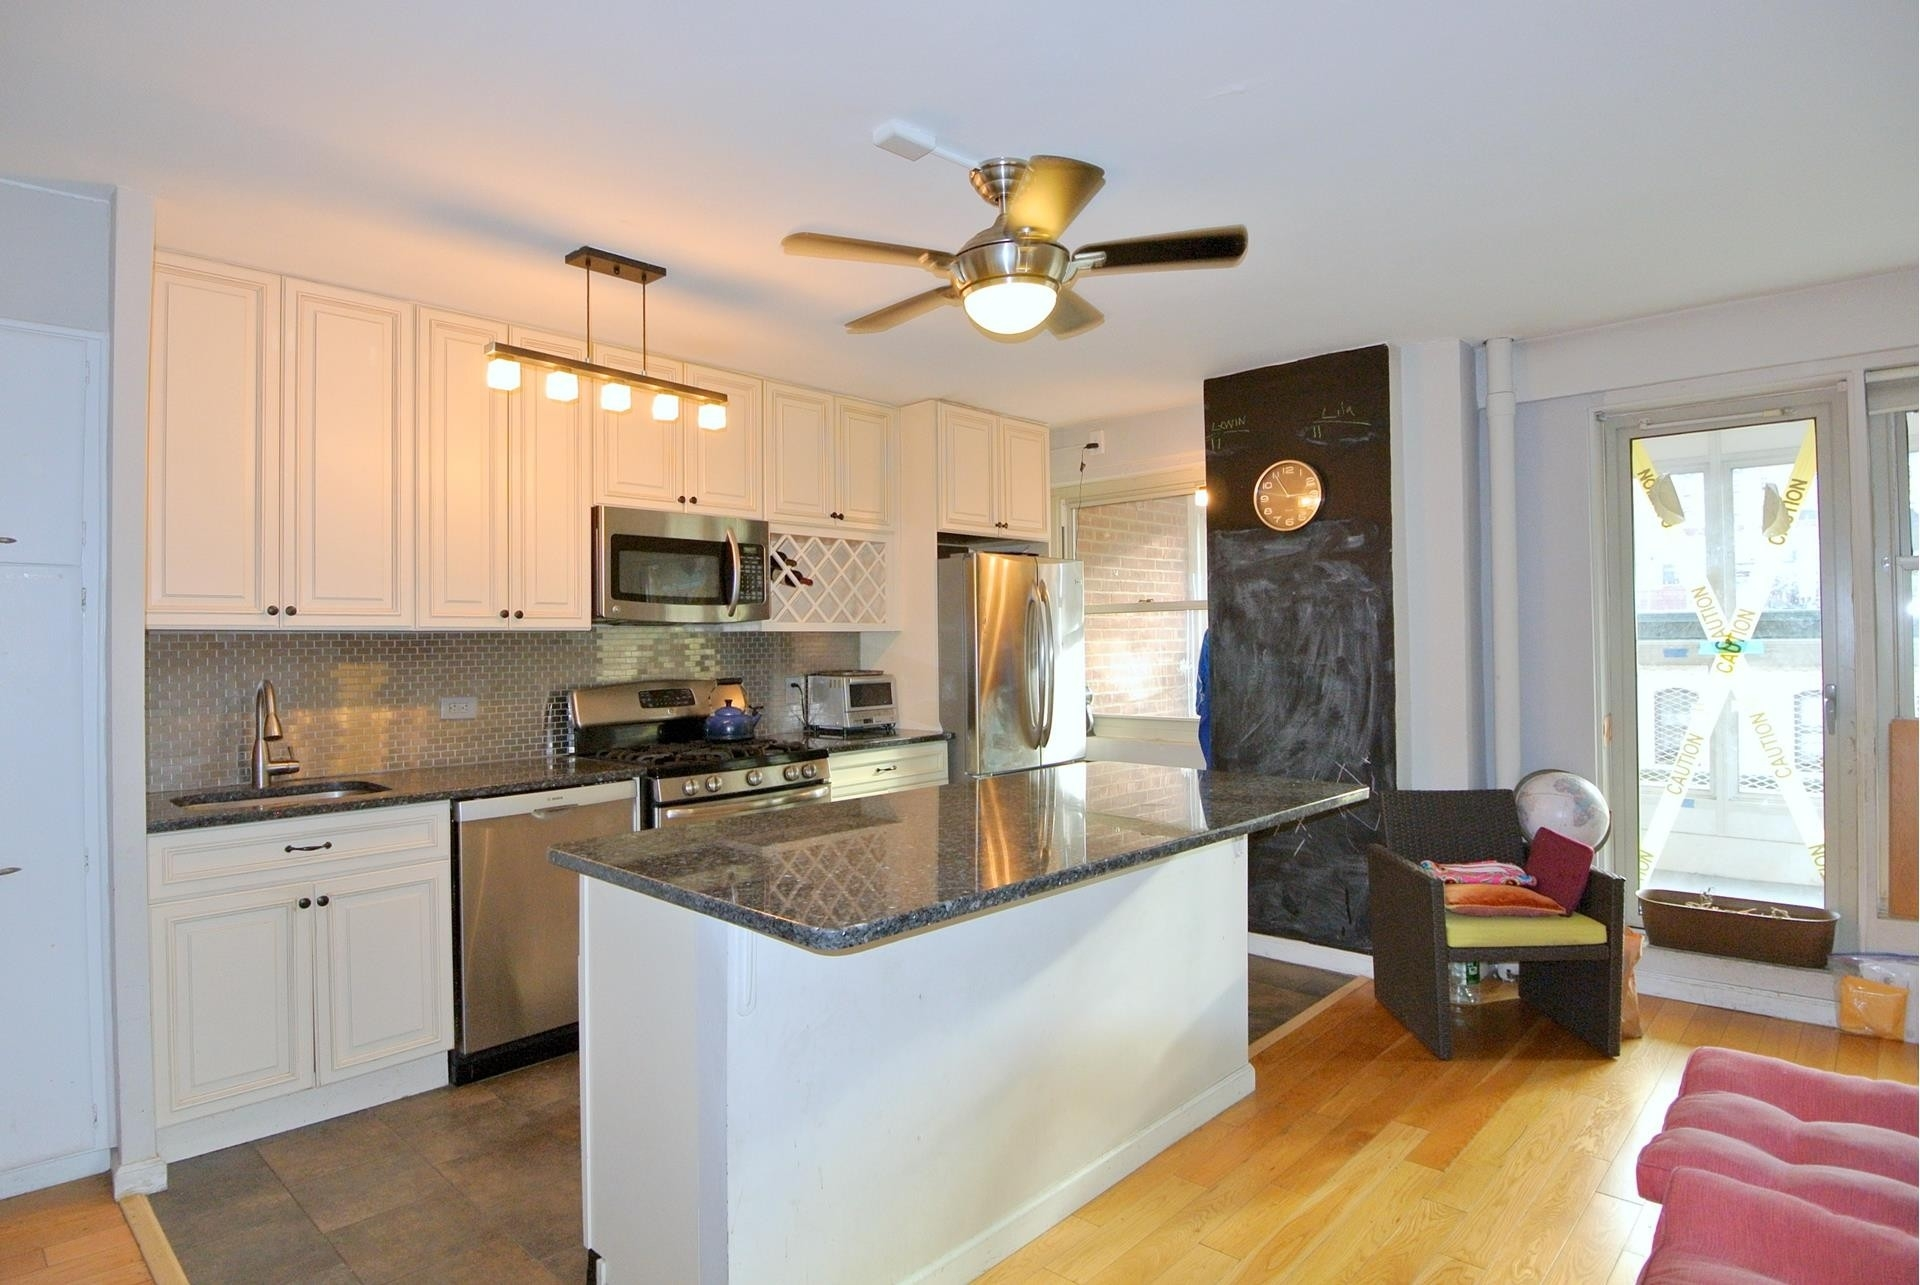 Property en Morningside Gardens, 501 West 123rd St, 7G Morningside Heights, New York, NY 10027